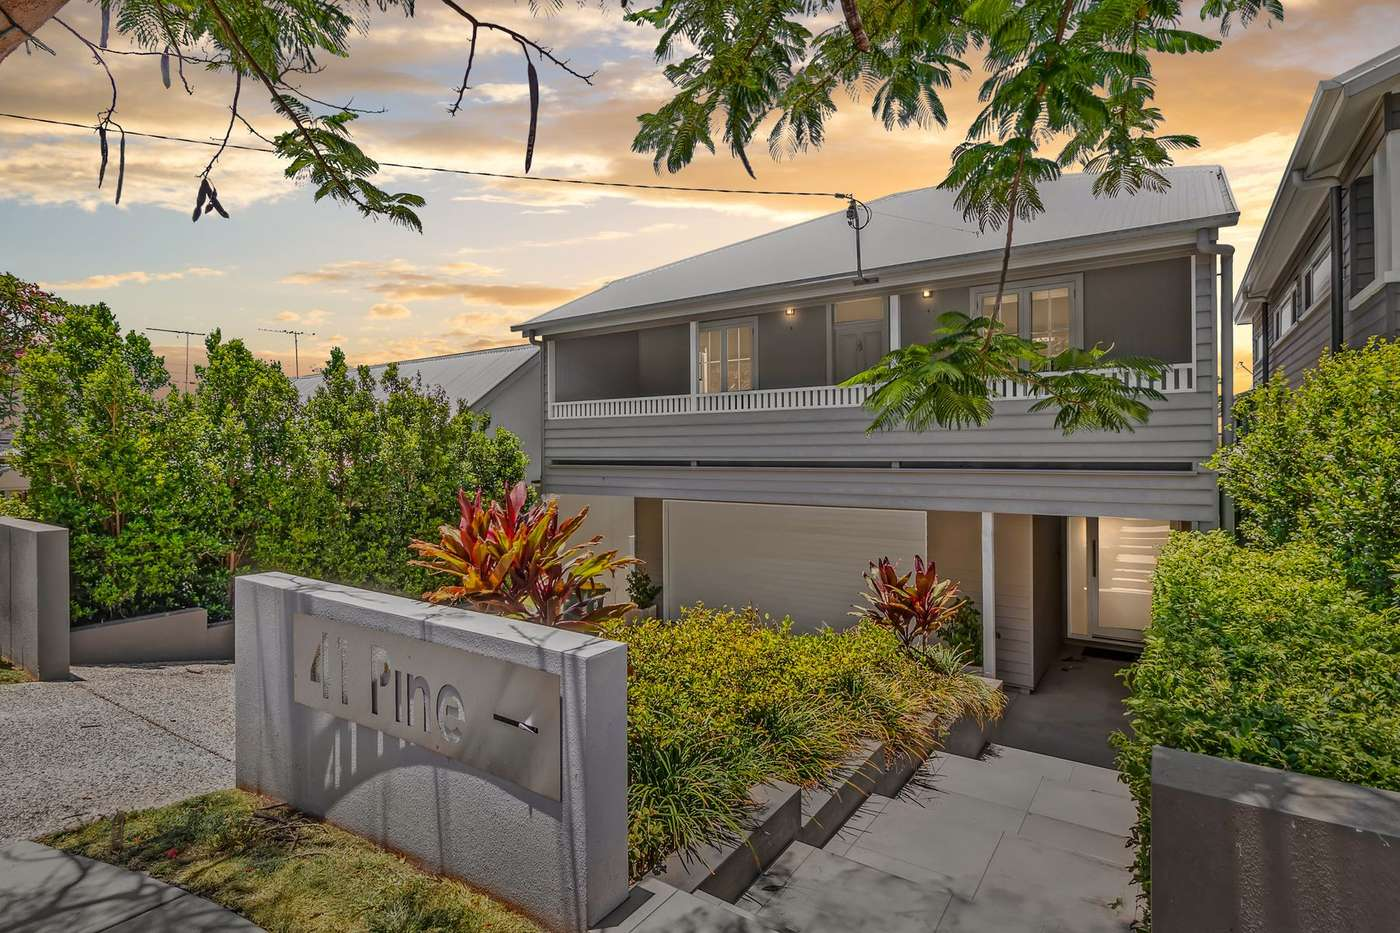 Main view of Homely house listing, 41 Pine Street, Bulimba, QLD 4171